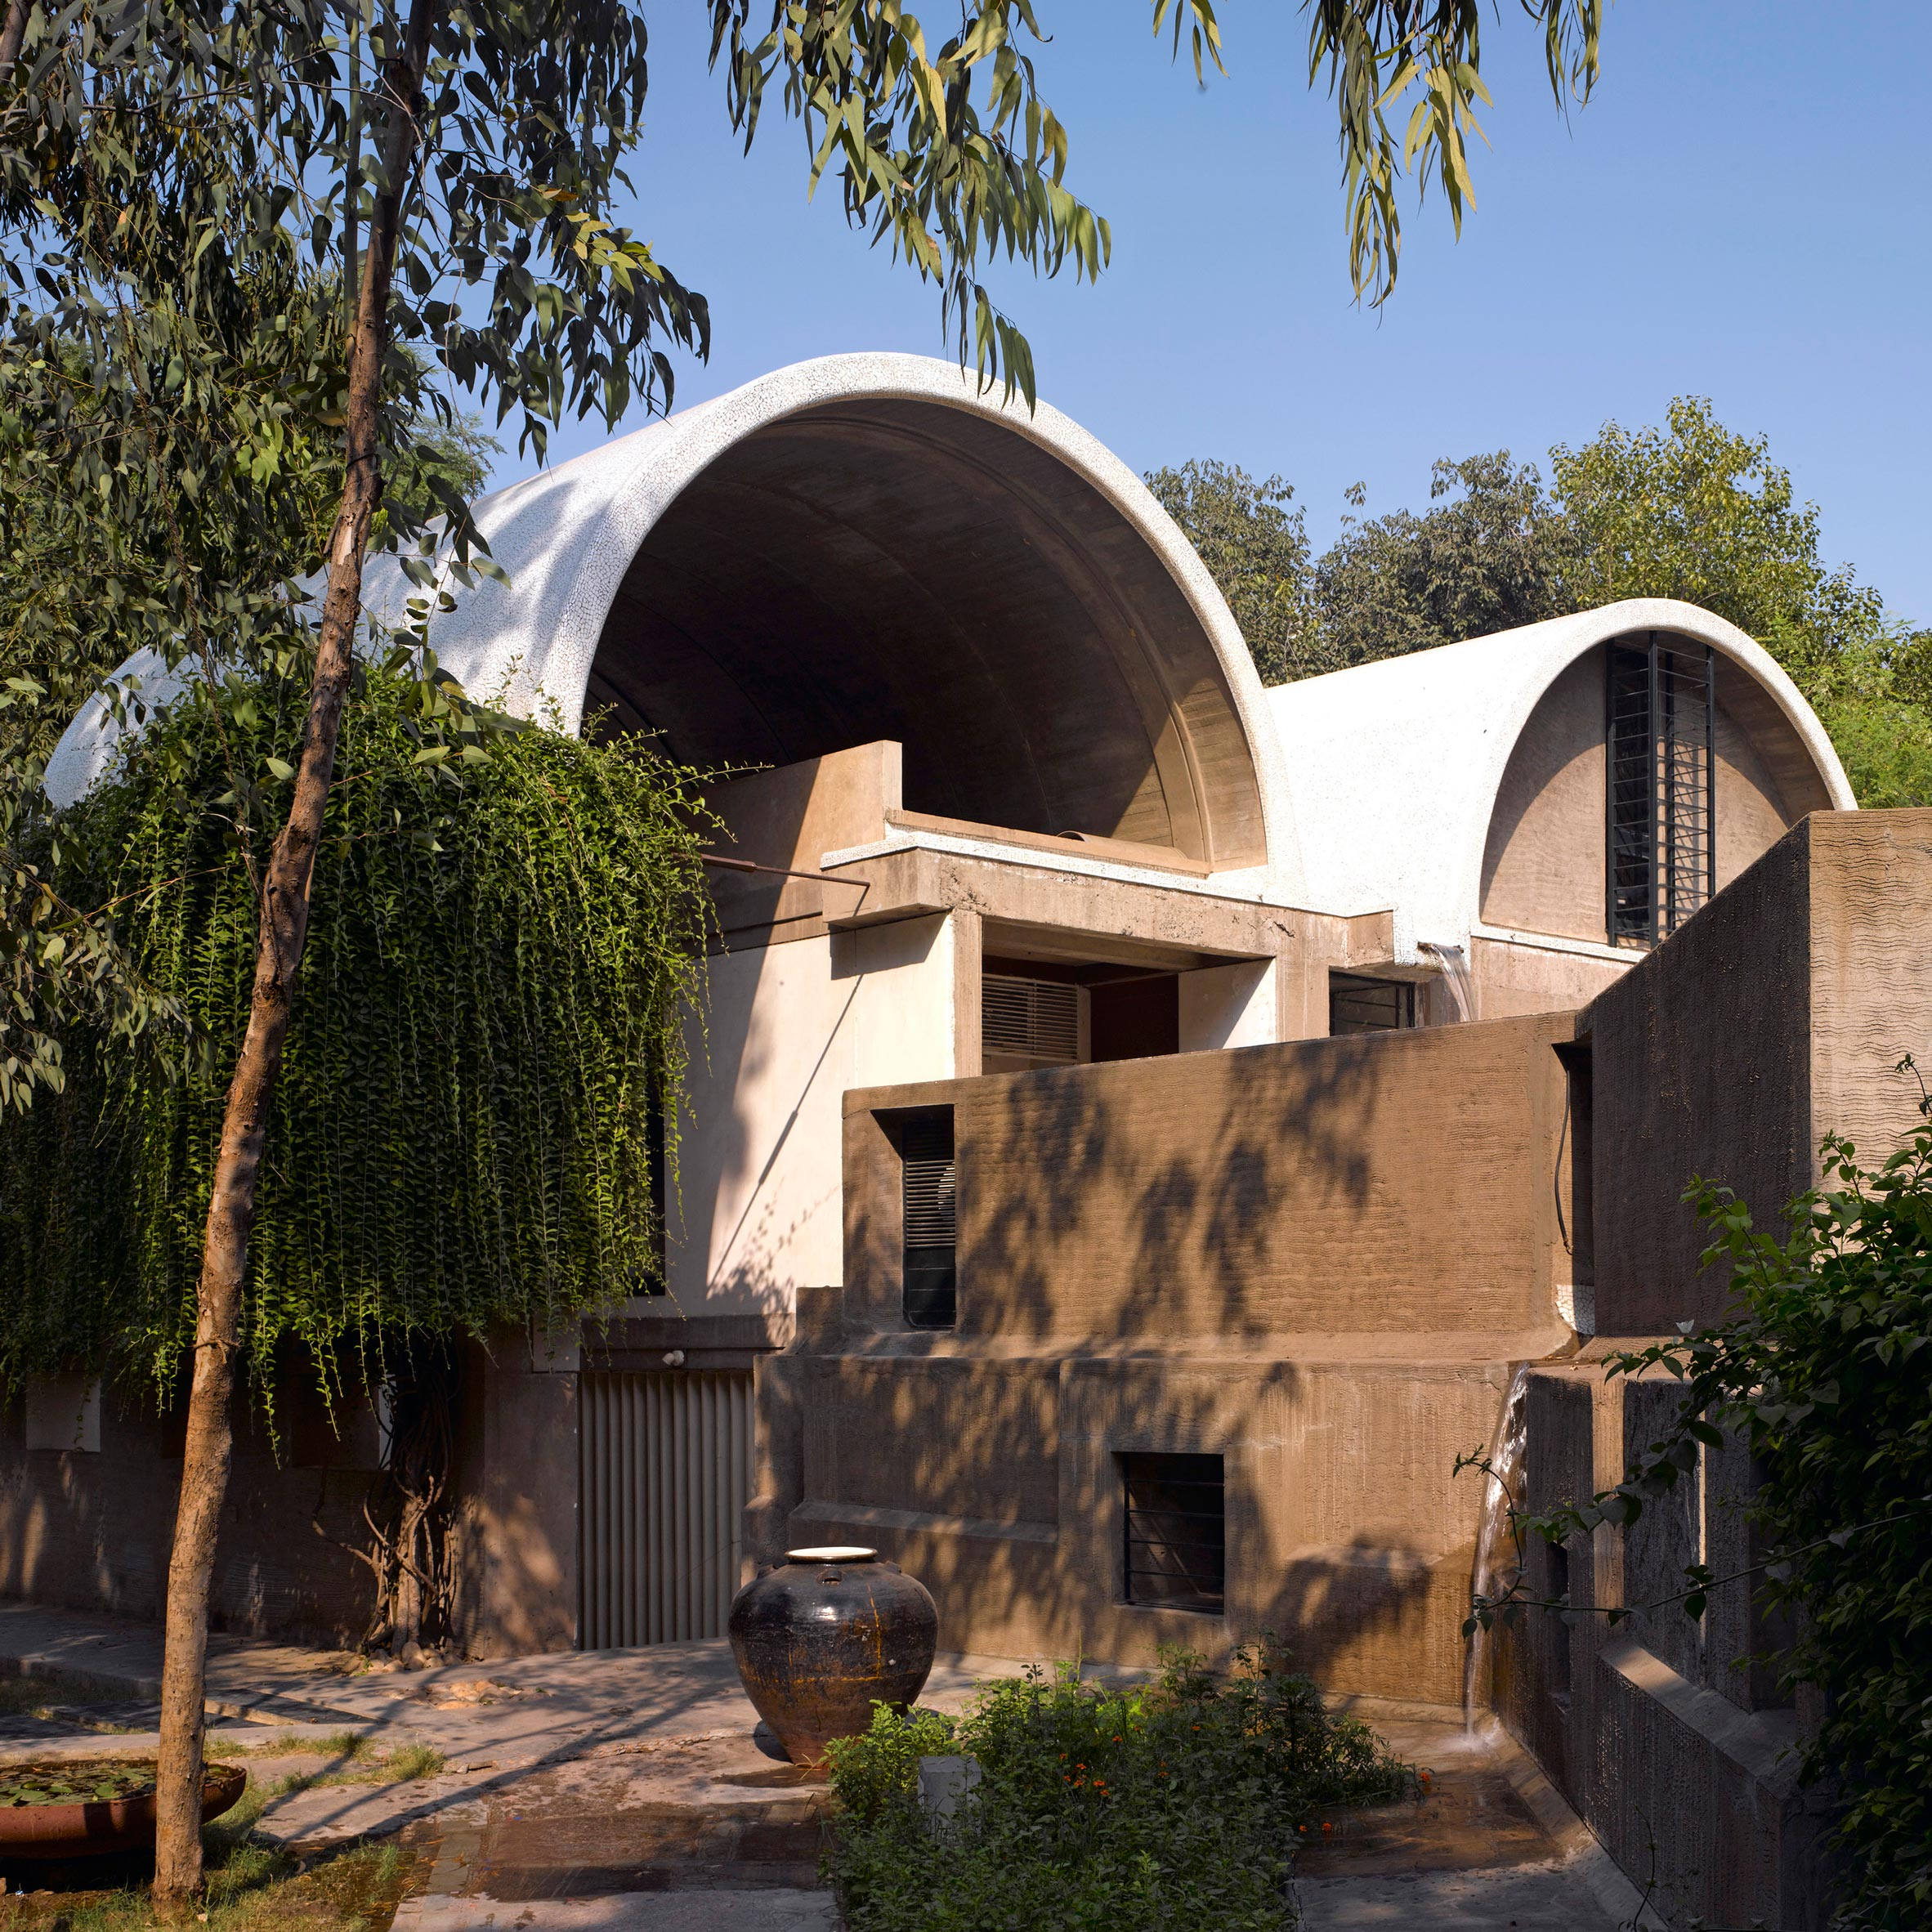 indian architecture and design dezeen magazine key projects by influential indian architect balkrishna doshi